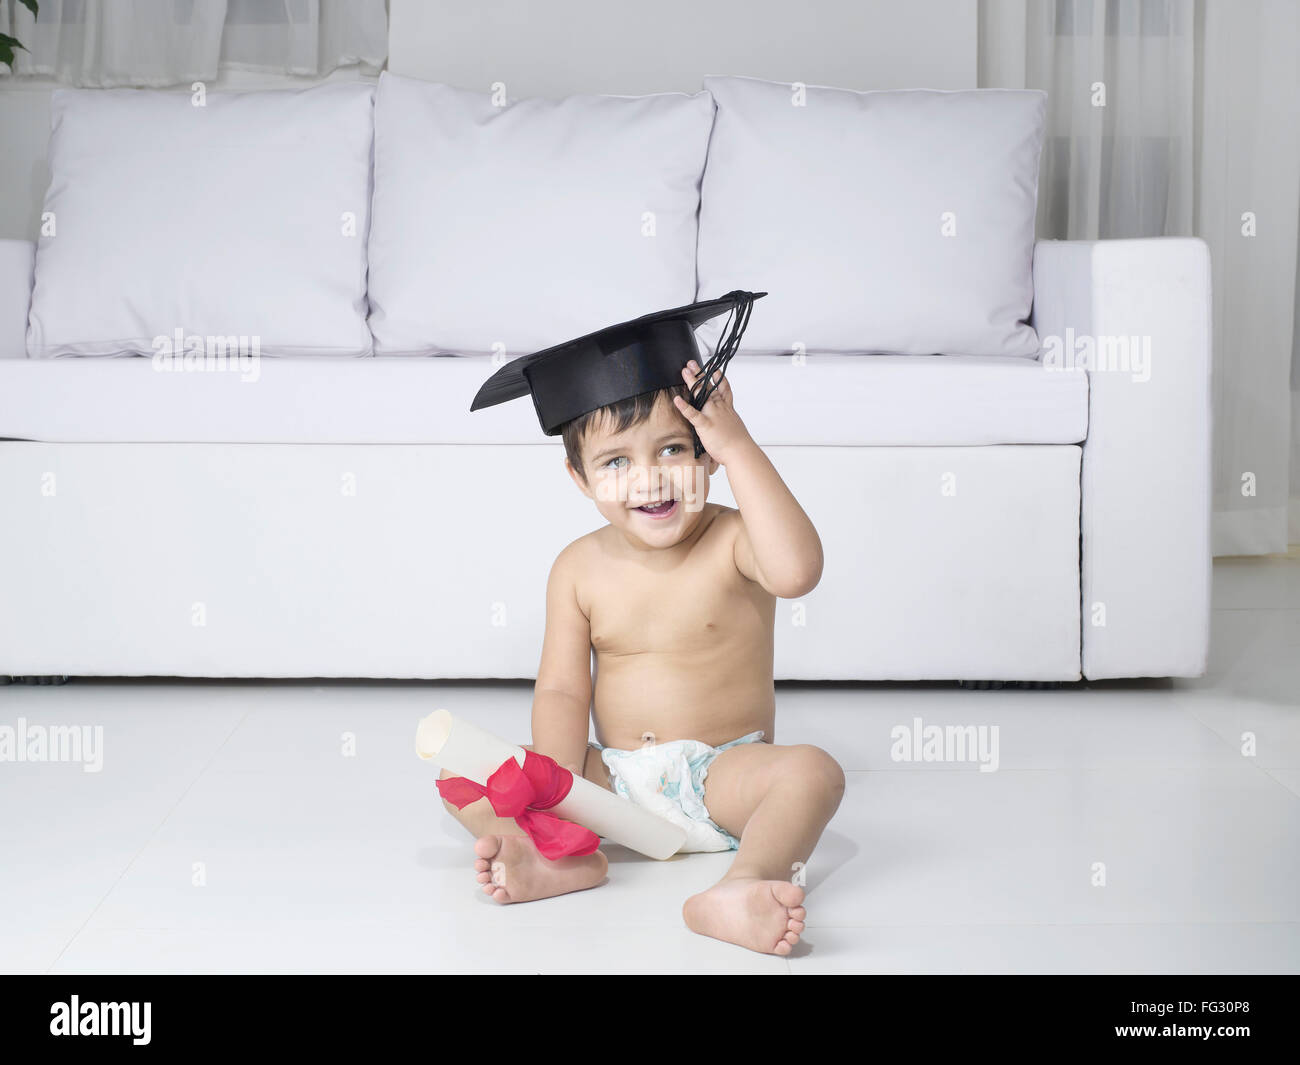 Baby holding degree certificate ; MR#779O - Stock Image